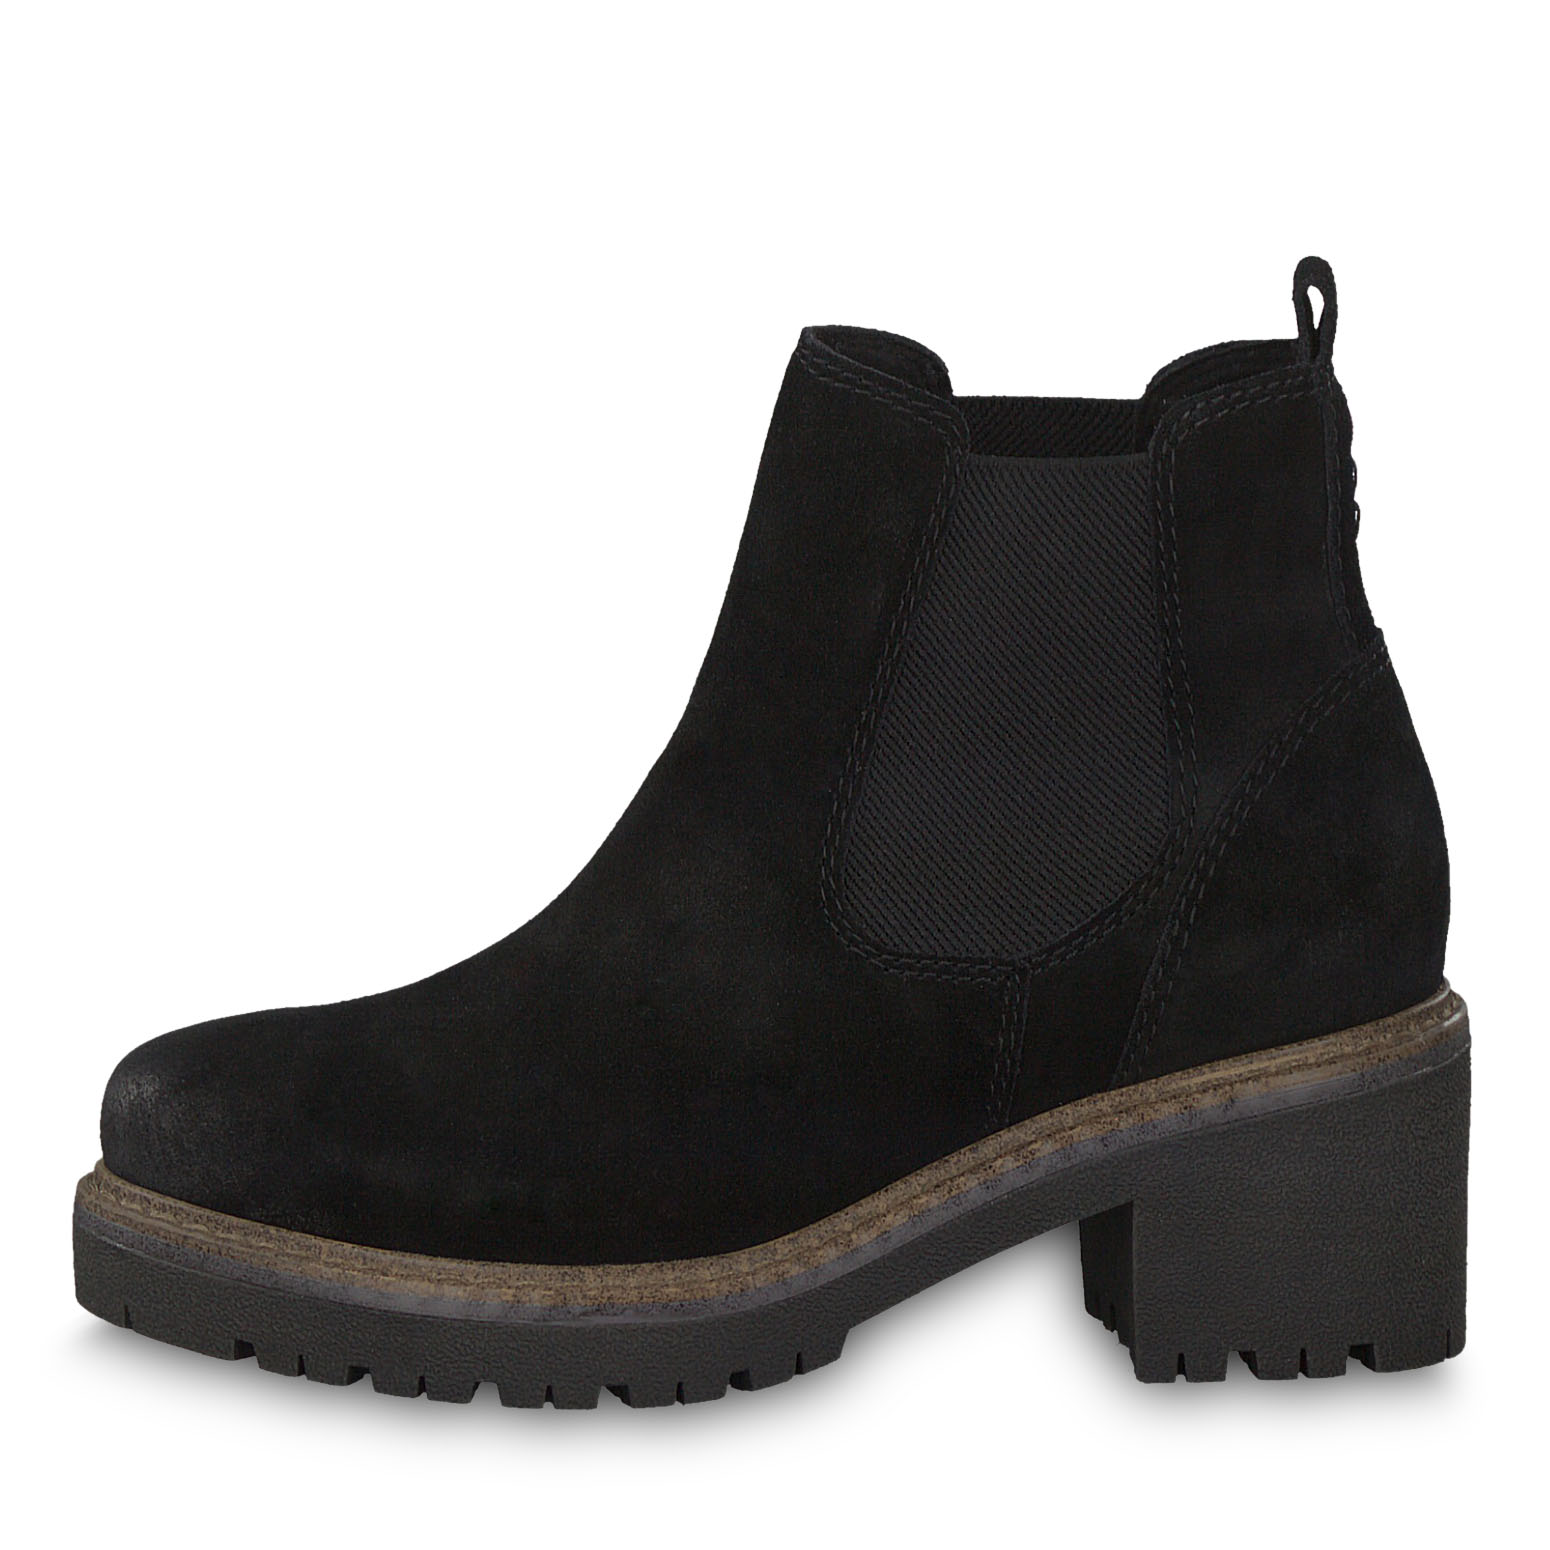 Leather Chelsea boot - black, BLACK COMB, hi-res